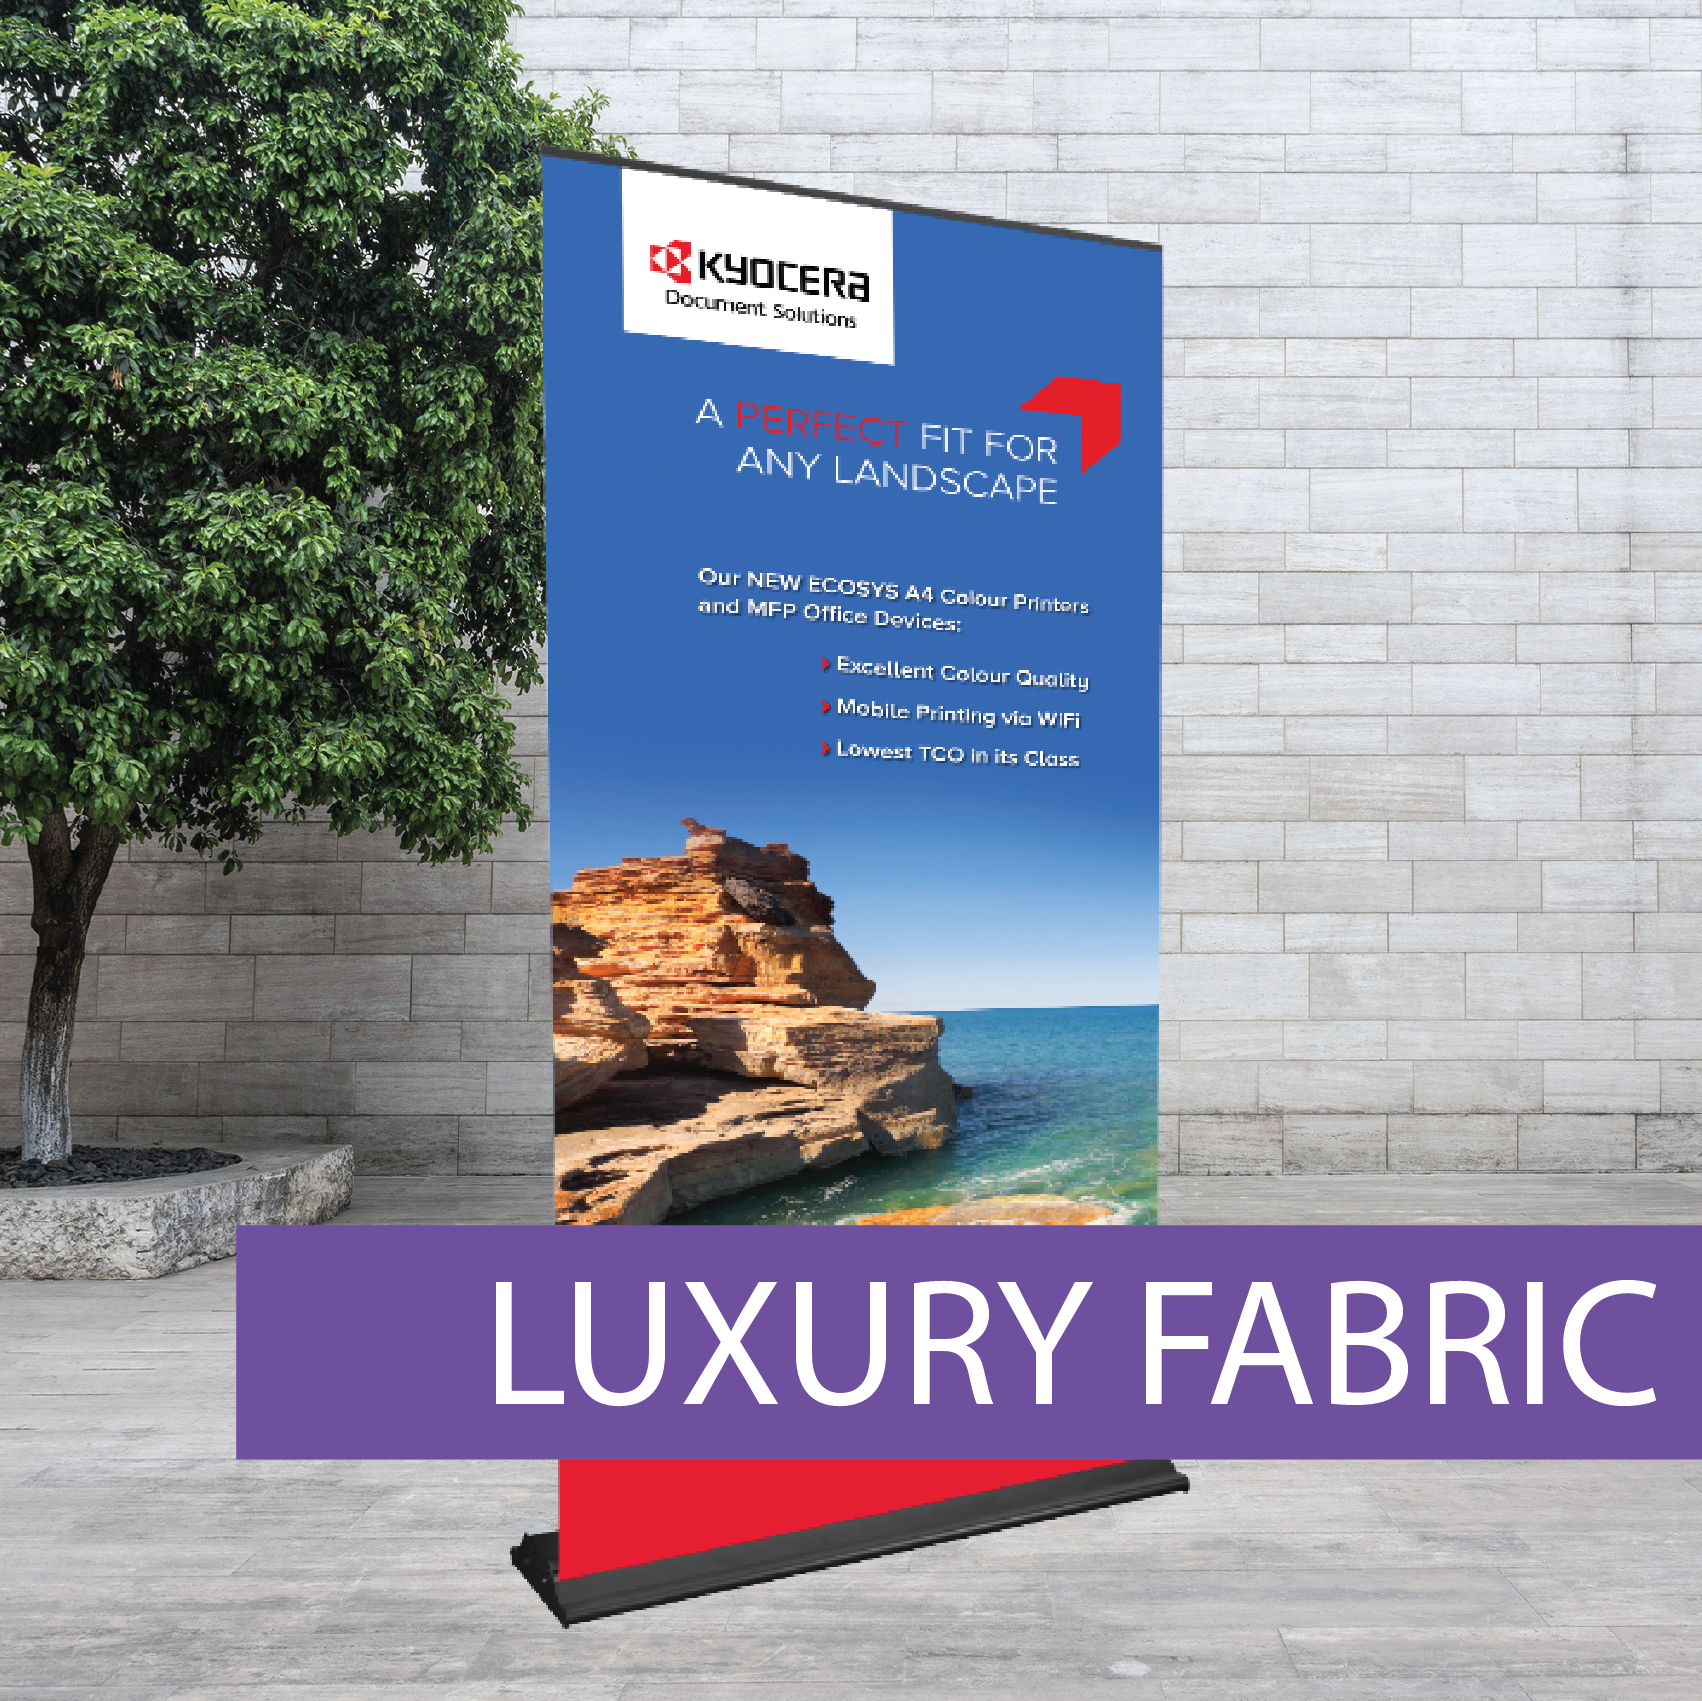 Luxury fabric Pullup Banner